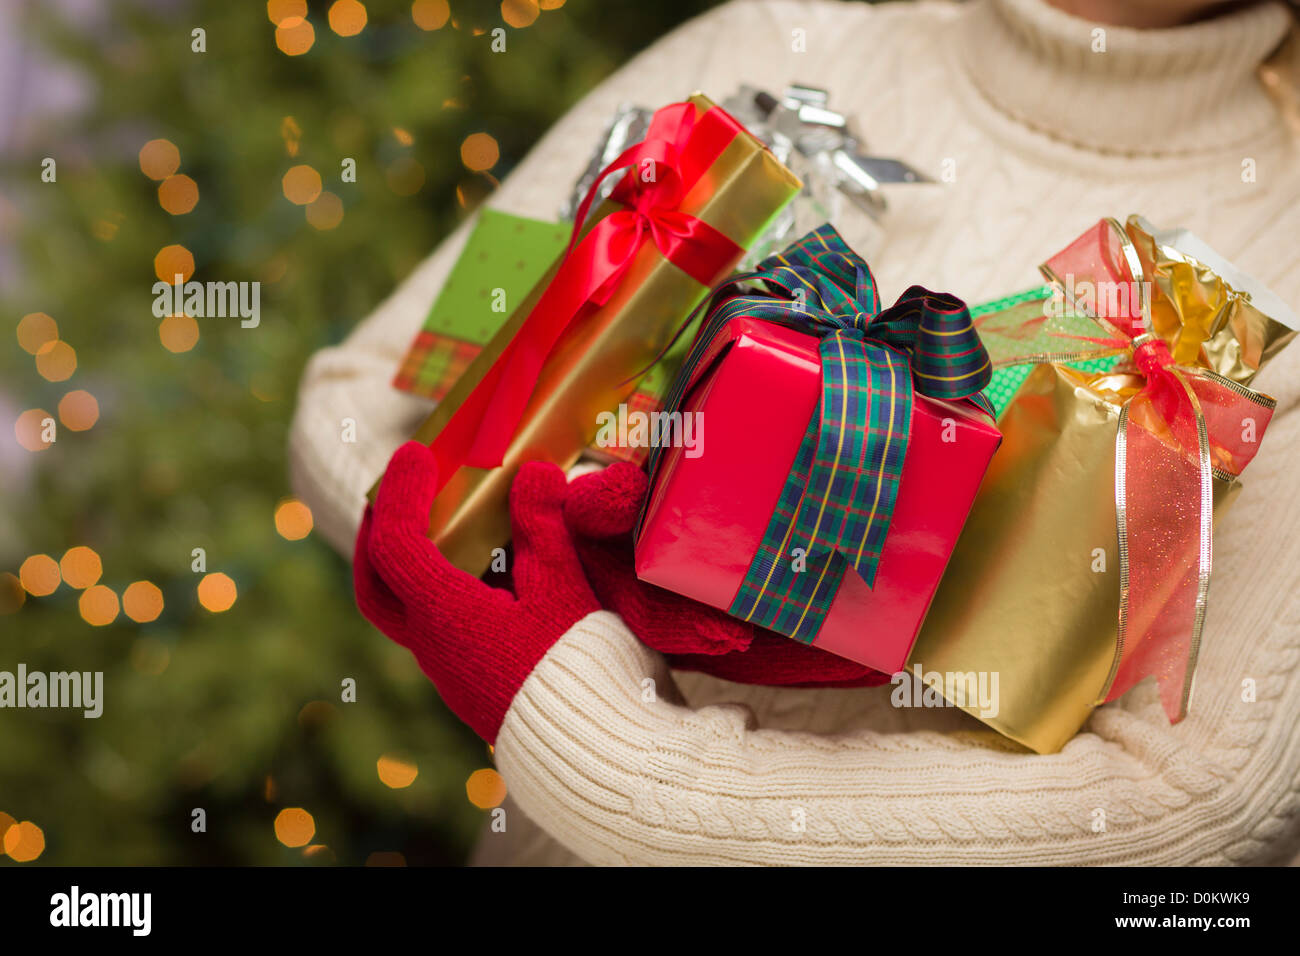 Woman Wearing A Sweater and Red Mittens Against an Abstract Green and Golden Background Holding Christmas Gifts - Stock Image